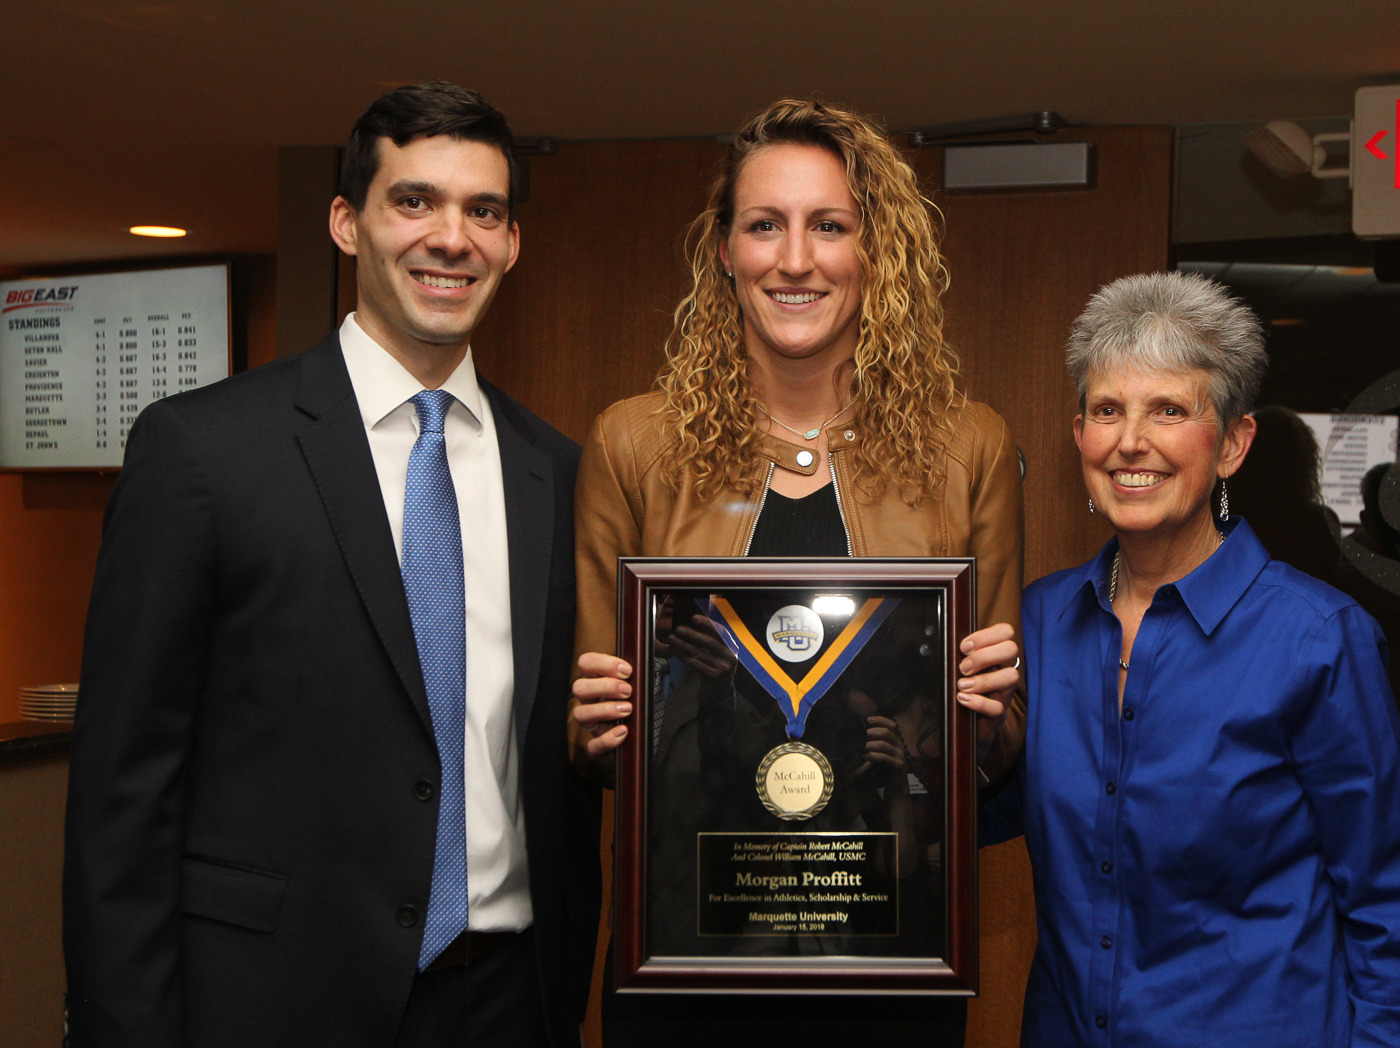 Morgan Proffitt (center), who was given her McCahill Award in January, will be honored again on April 27.